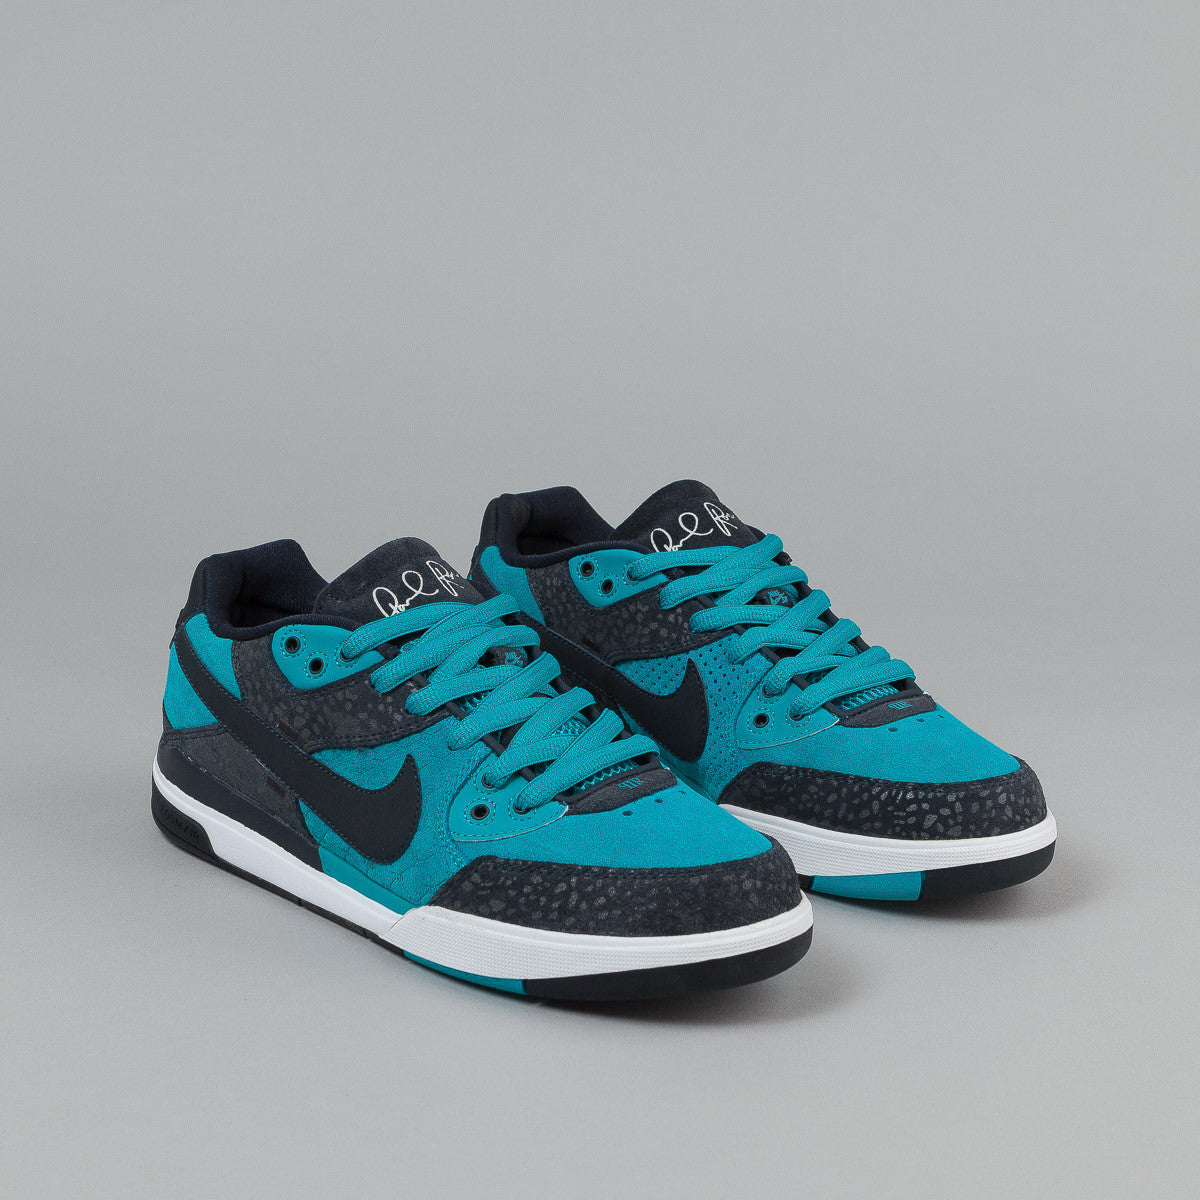 Nike SB Paul Rodriguez 3 Shoes - Aquamarine / Dark Obsidian - White